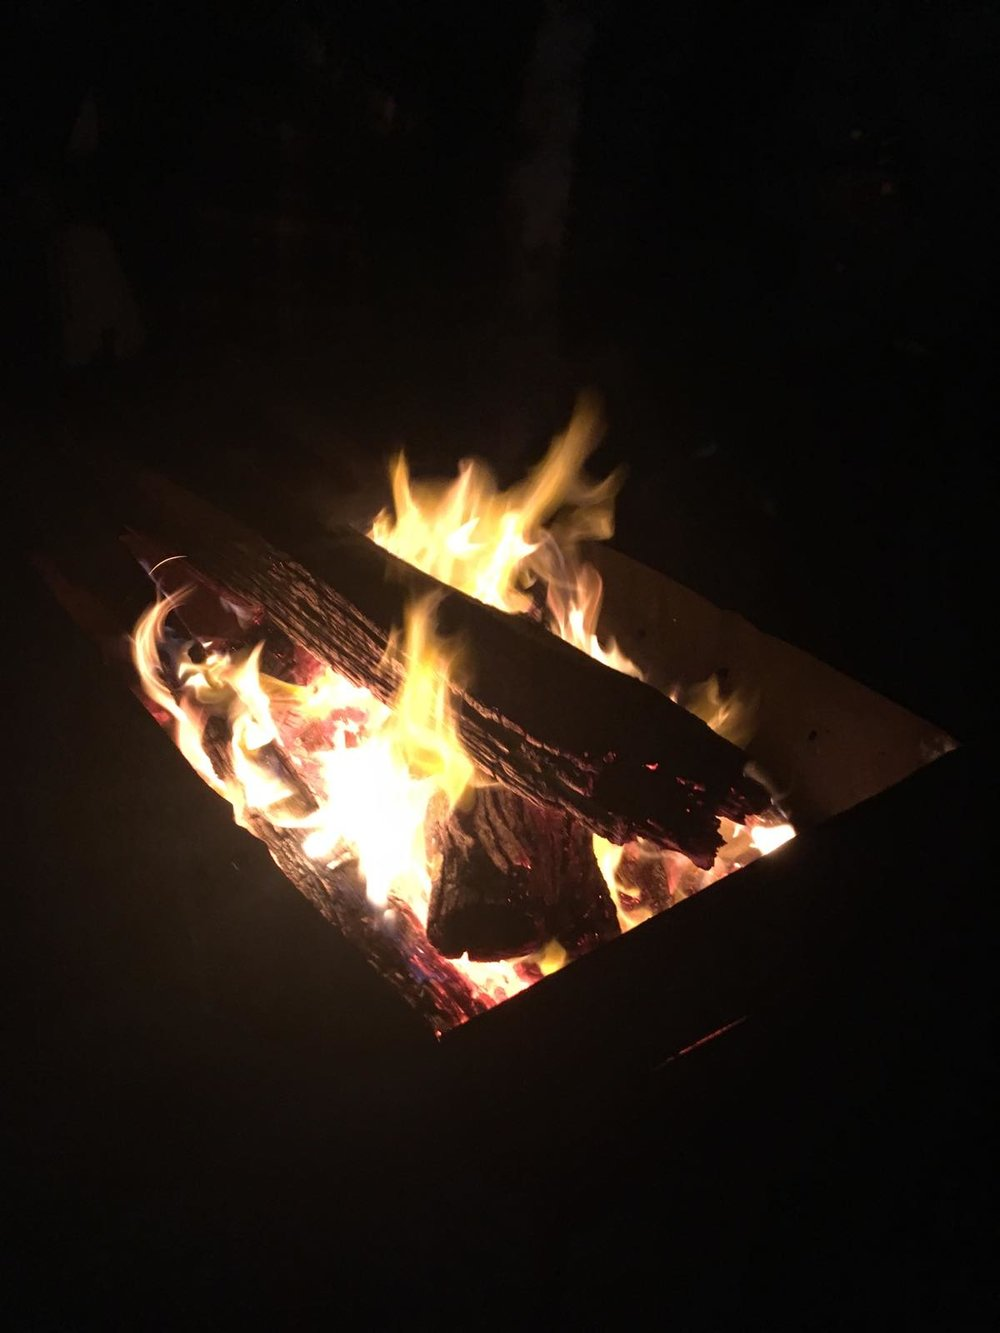 outdoor fire in winter.jpg